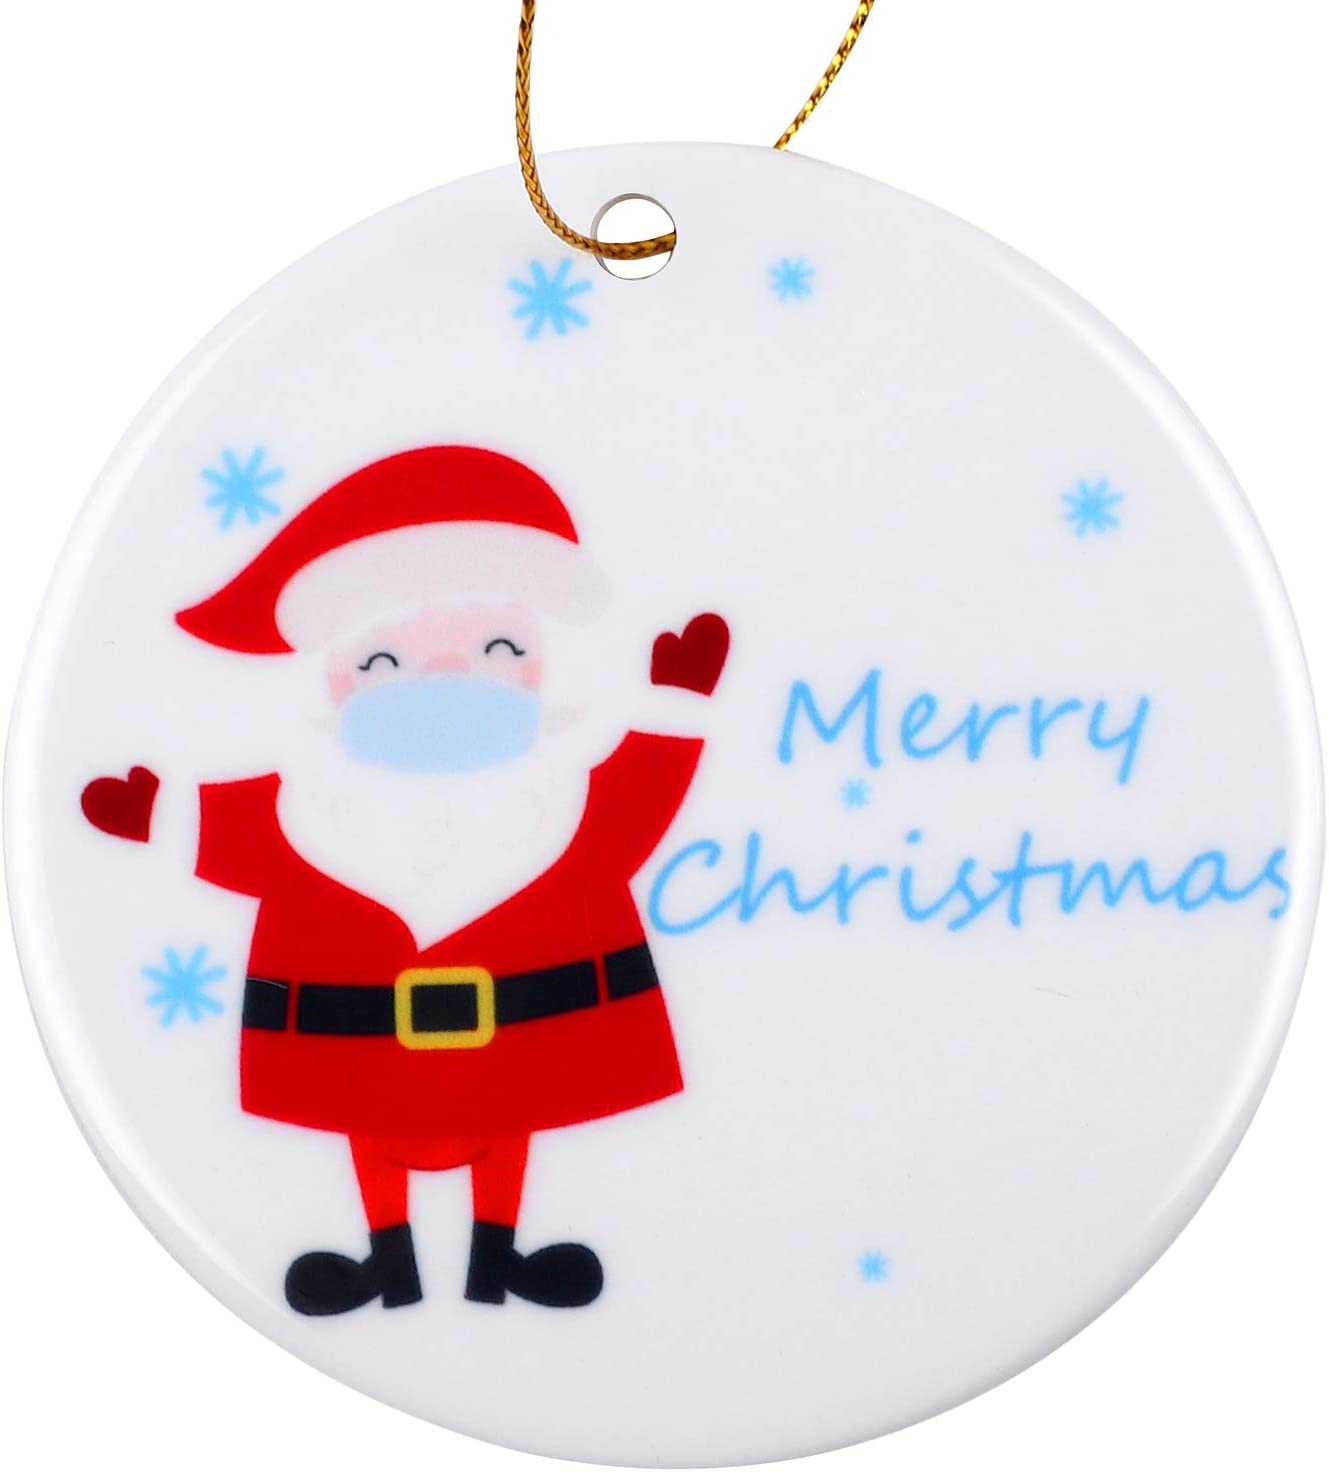 Elcoho Christmas Ceramic Ornaments Cute Santa Claus Wearing Mouth-Muffle Novel Christmas Tree Decoration Christmas Ornaments for Gifts and Home Decorations